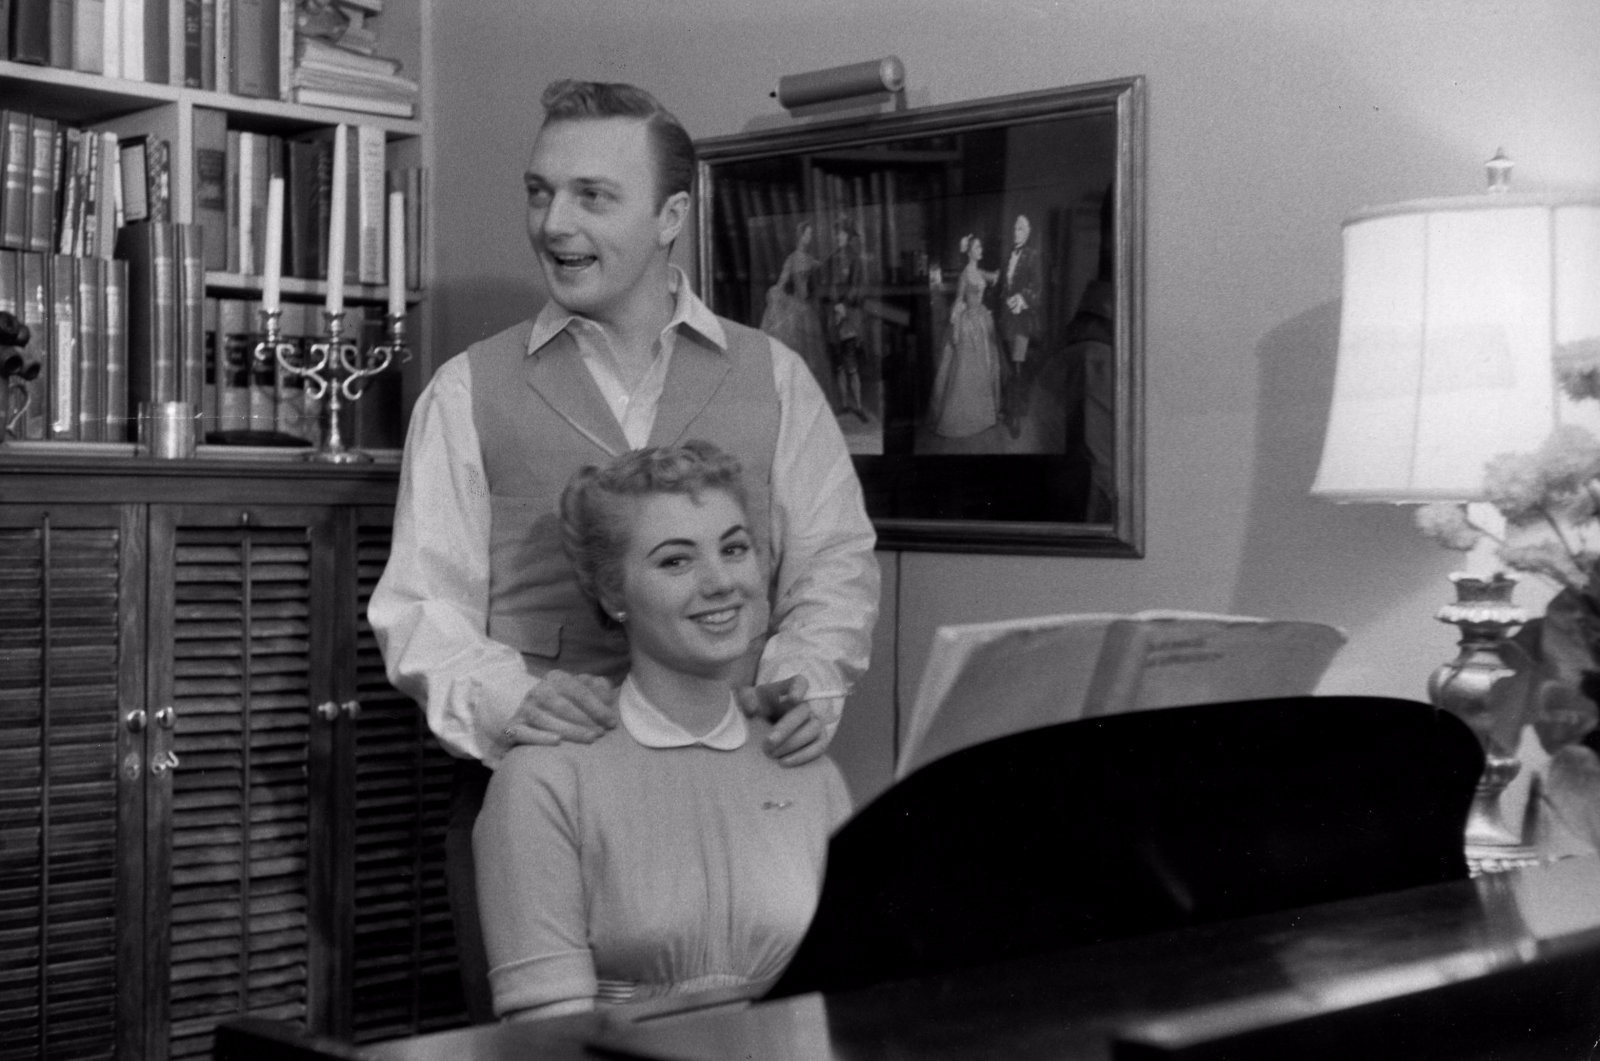 Jack Cassidy is standing behind a chair on which his wife Shirley Jones is sitting. Jack is looking away from the camera.